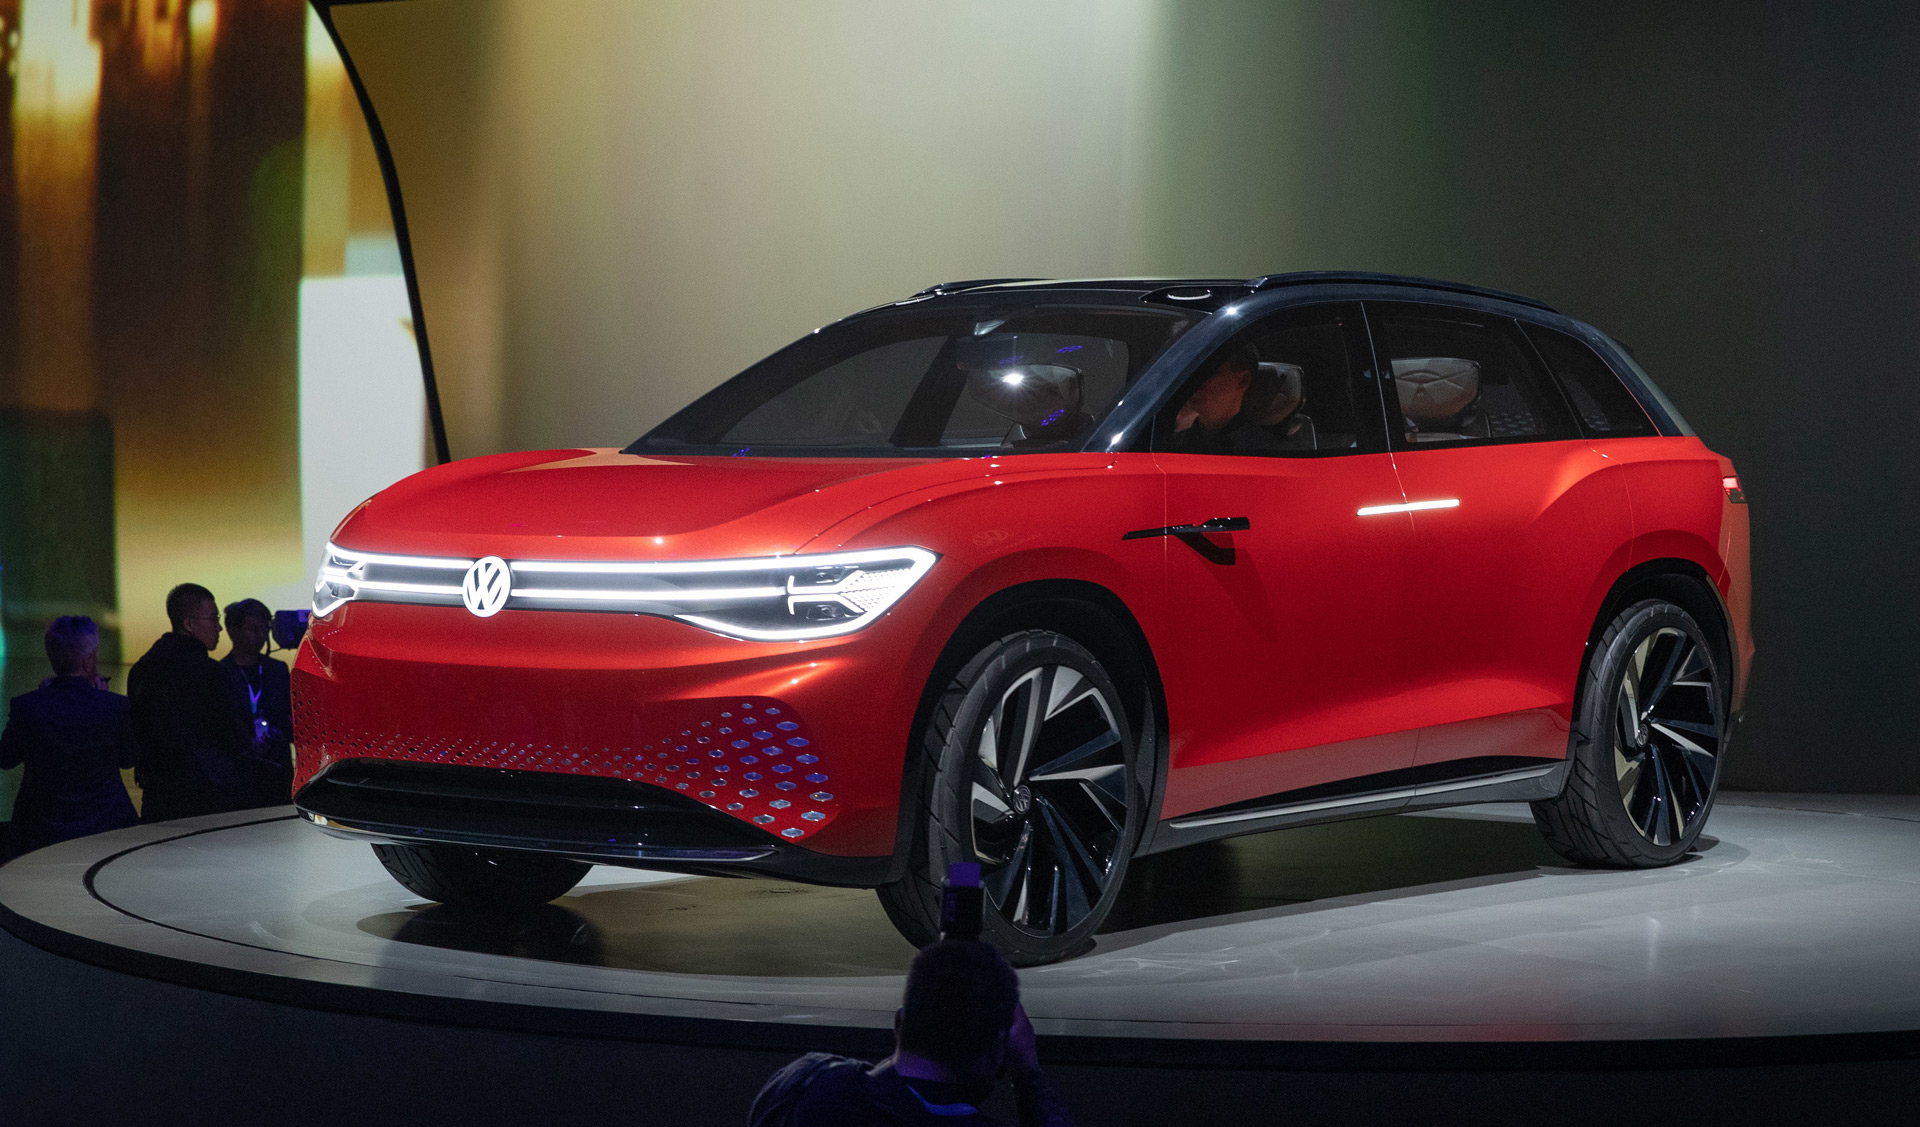 Volkswagen to challenge Tesla X dominance in China with Electric SUVs - Volkswagen India - Mody Auto Group